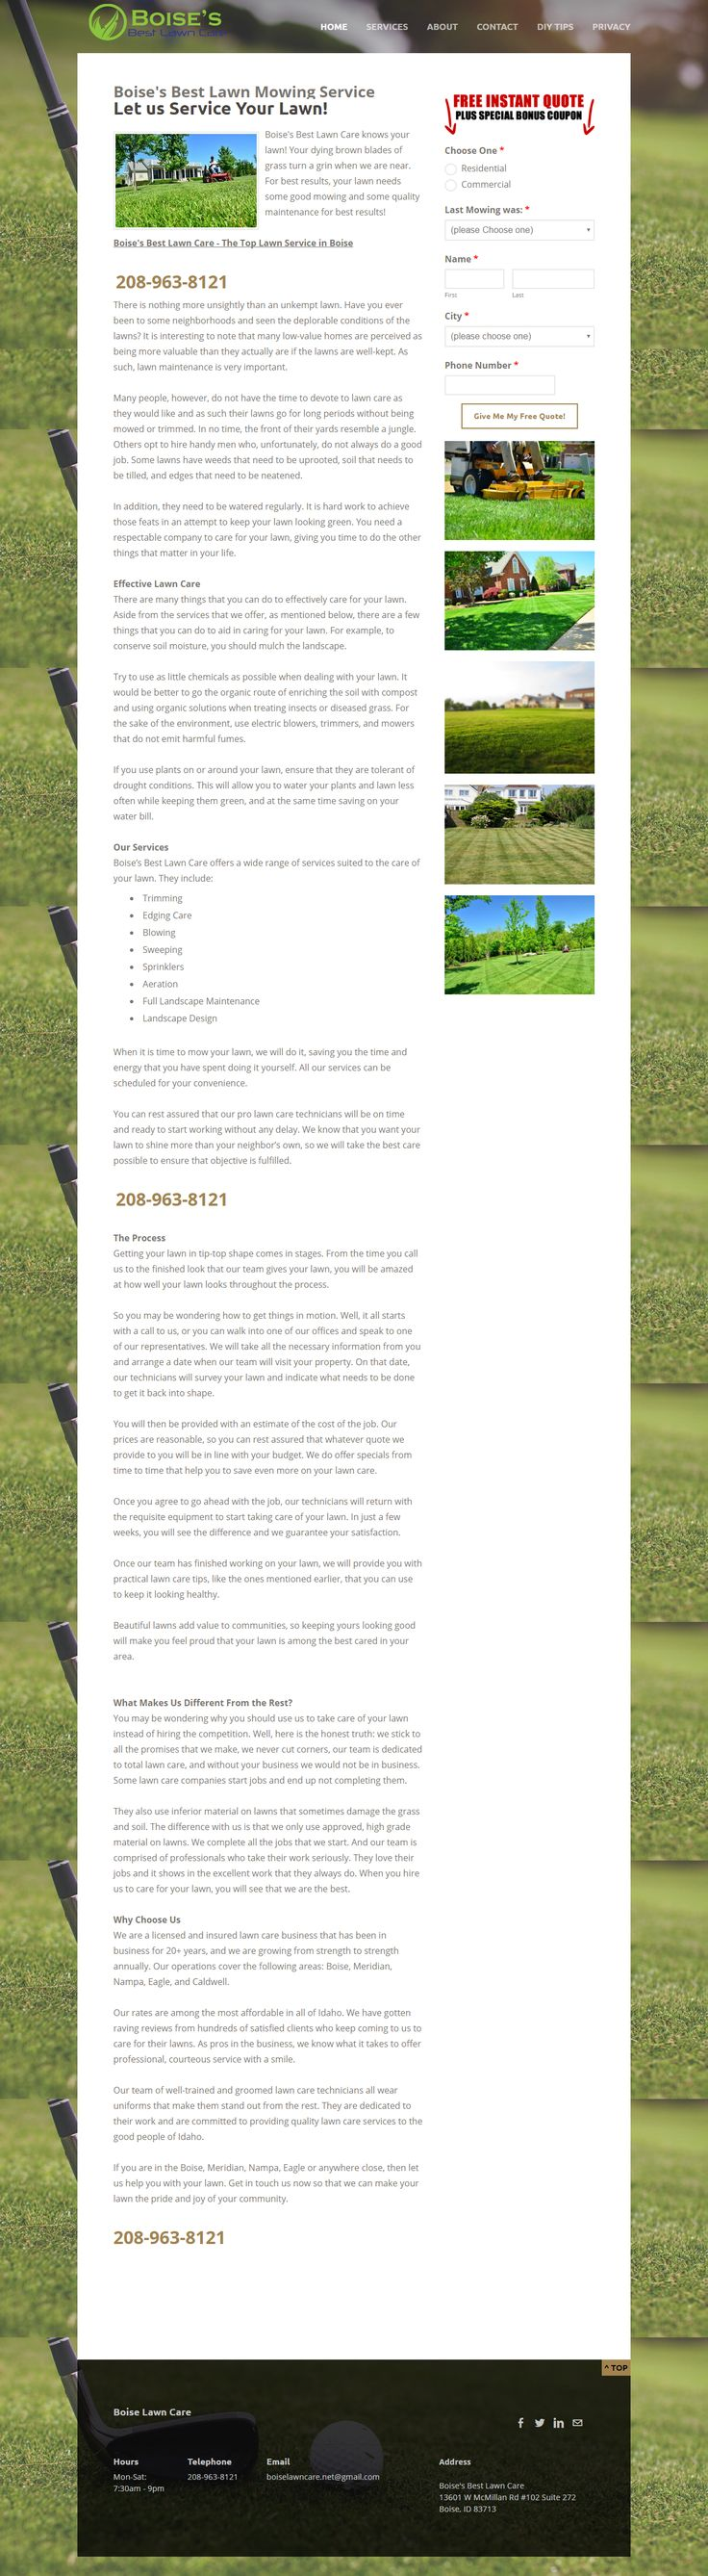 1000 ideas about lawn care companies lawn care boise s best lawn care is a professional licensed and insured lawn care business that